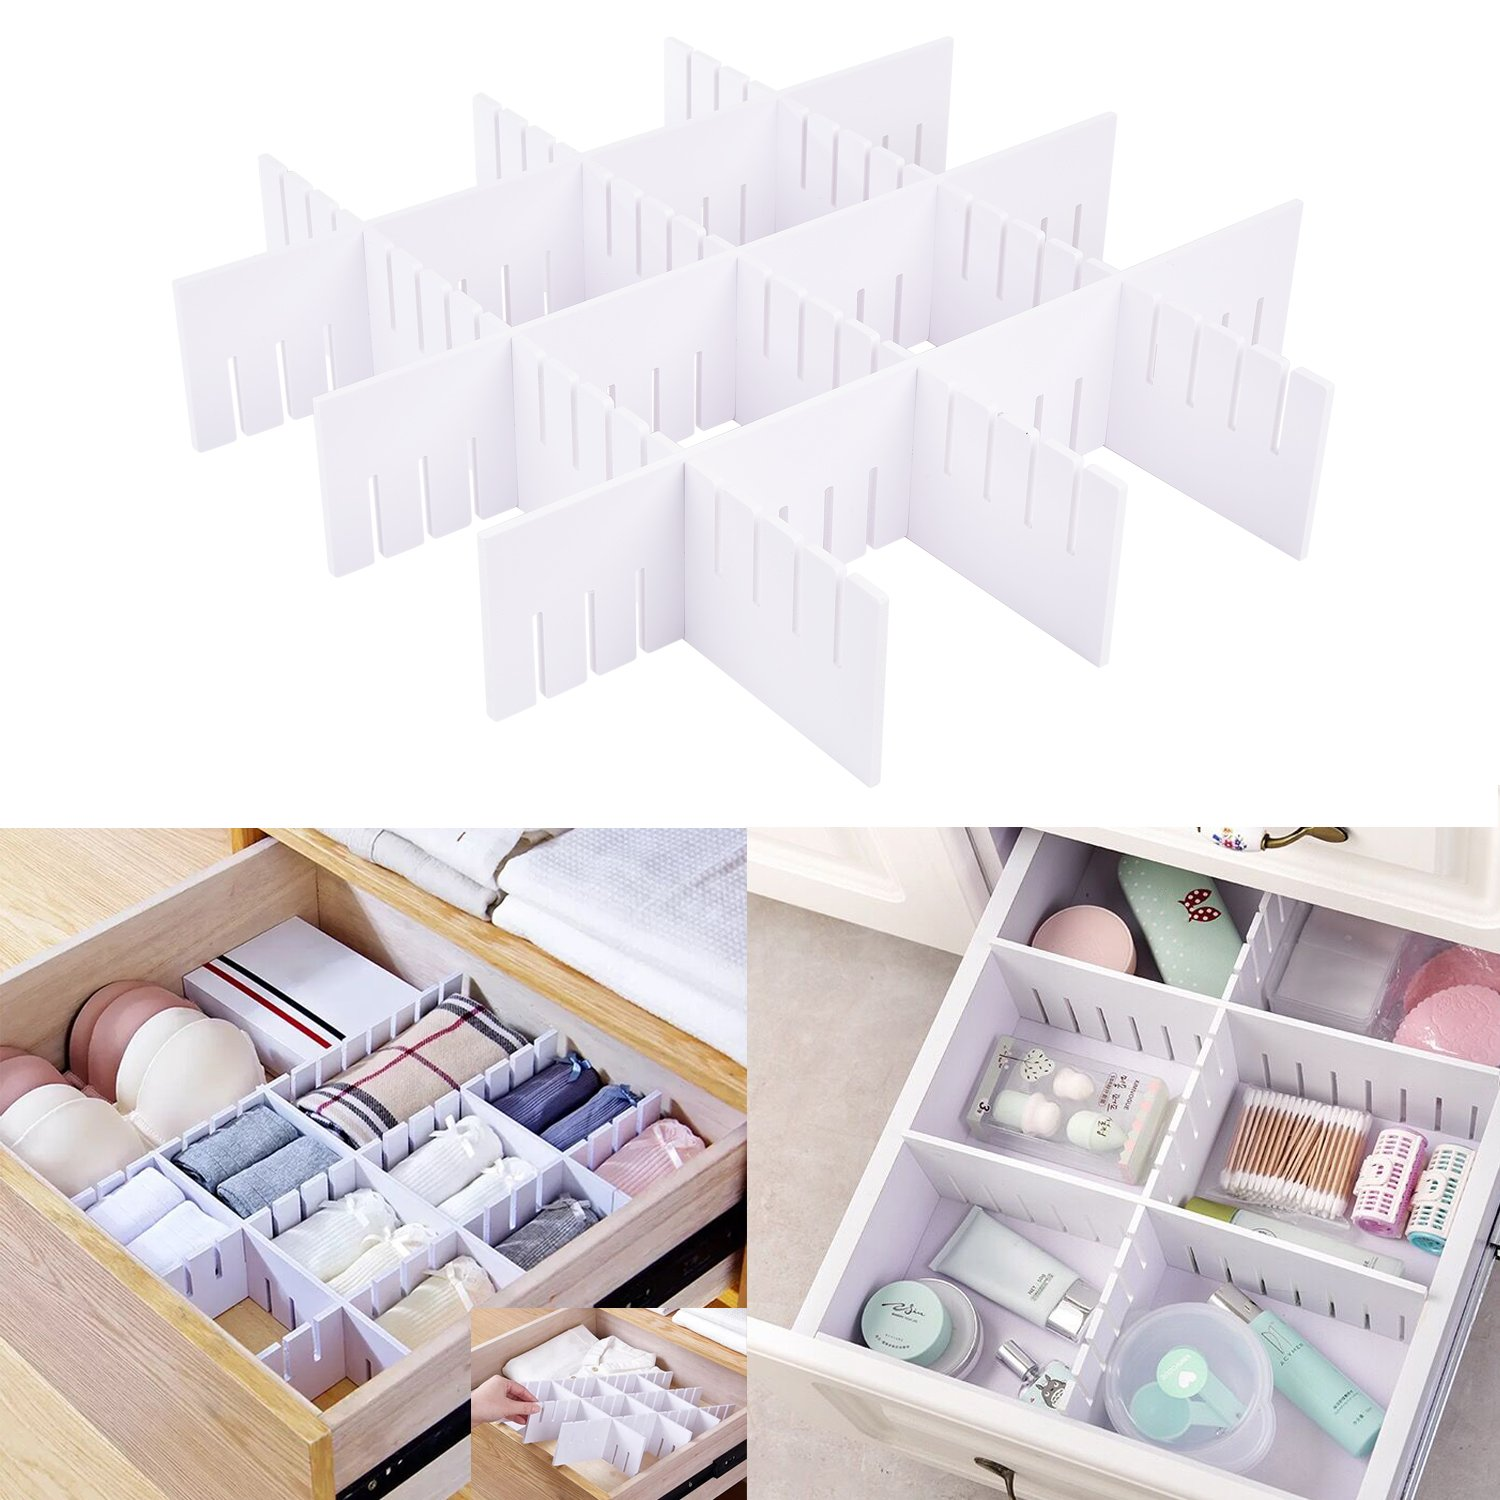 E-BAYKER Drawer Organizer, Drawer Dividers, DIY Arbitrary Splicing Sub-grid Household Storage Spacer Finishing Shelves for Home Tidy Closet & Desk Makeup Socks Underwear Scarves-3.6x18.5in (6 Pack)